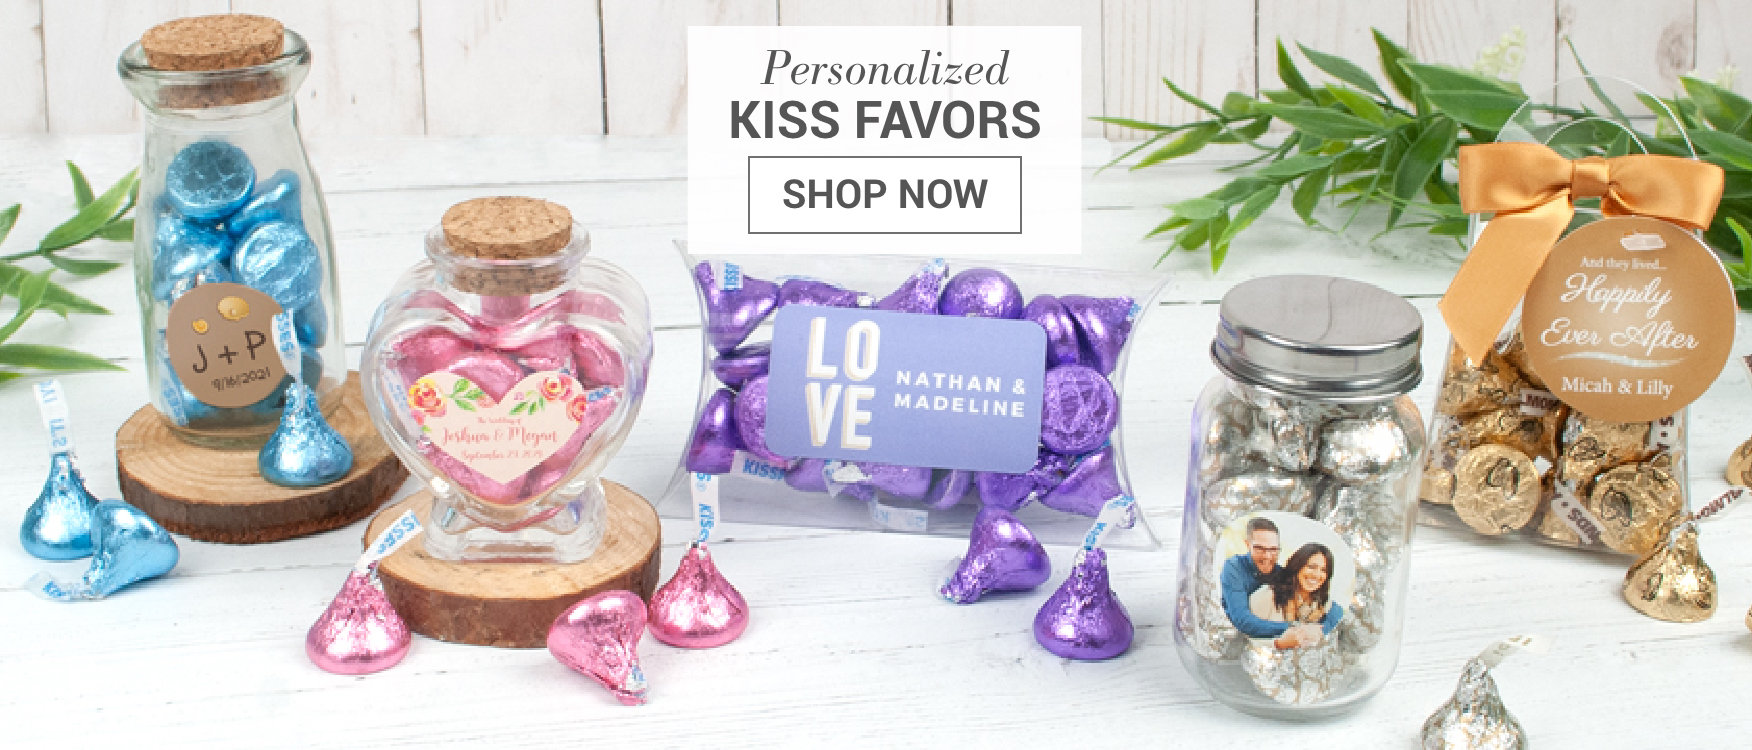 Personalized Hershey's Kiss Chocolate Favors